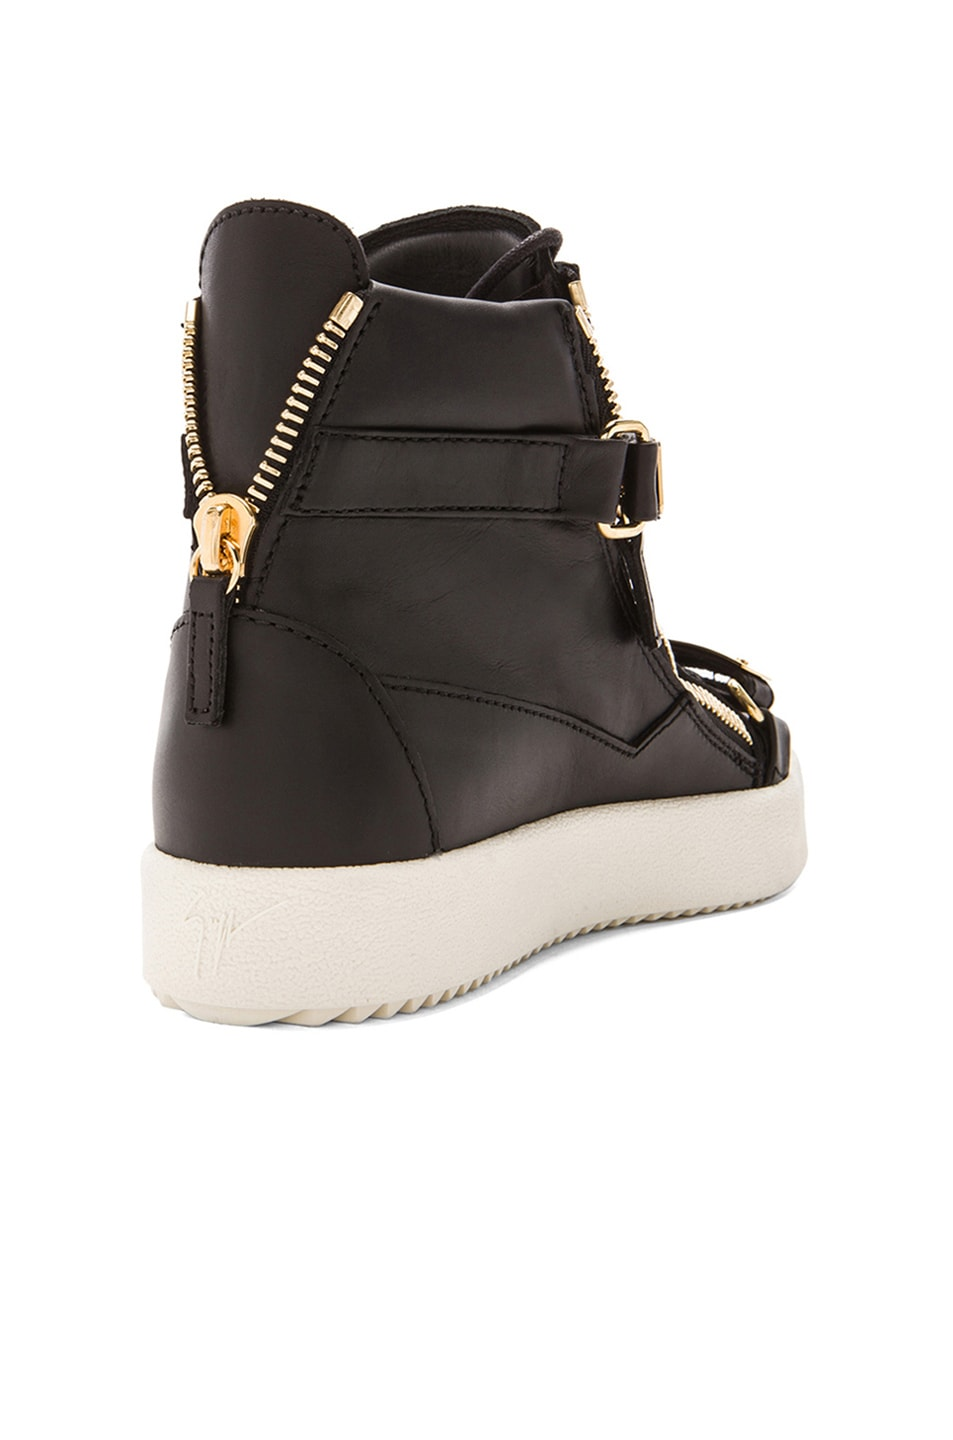 Image 3 of Giuseppe Zanotti Leather Bucked Sneakers in Black